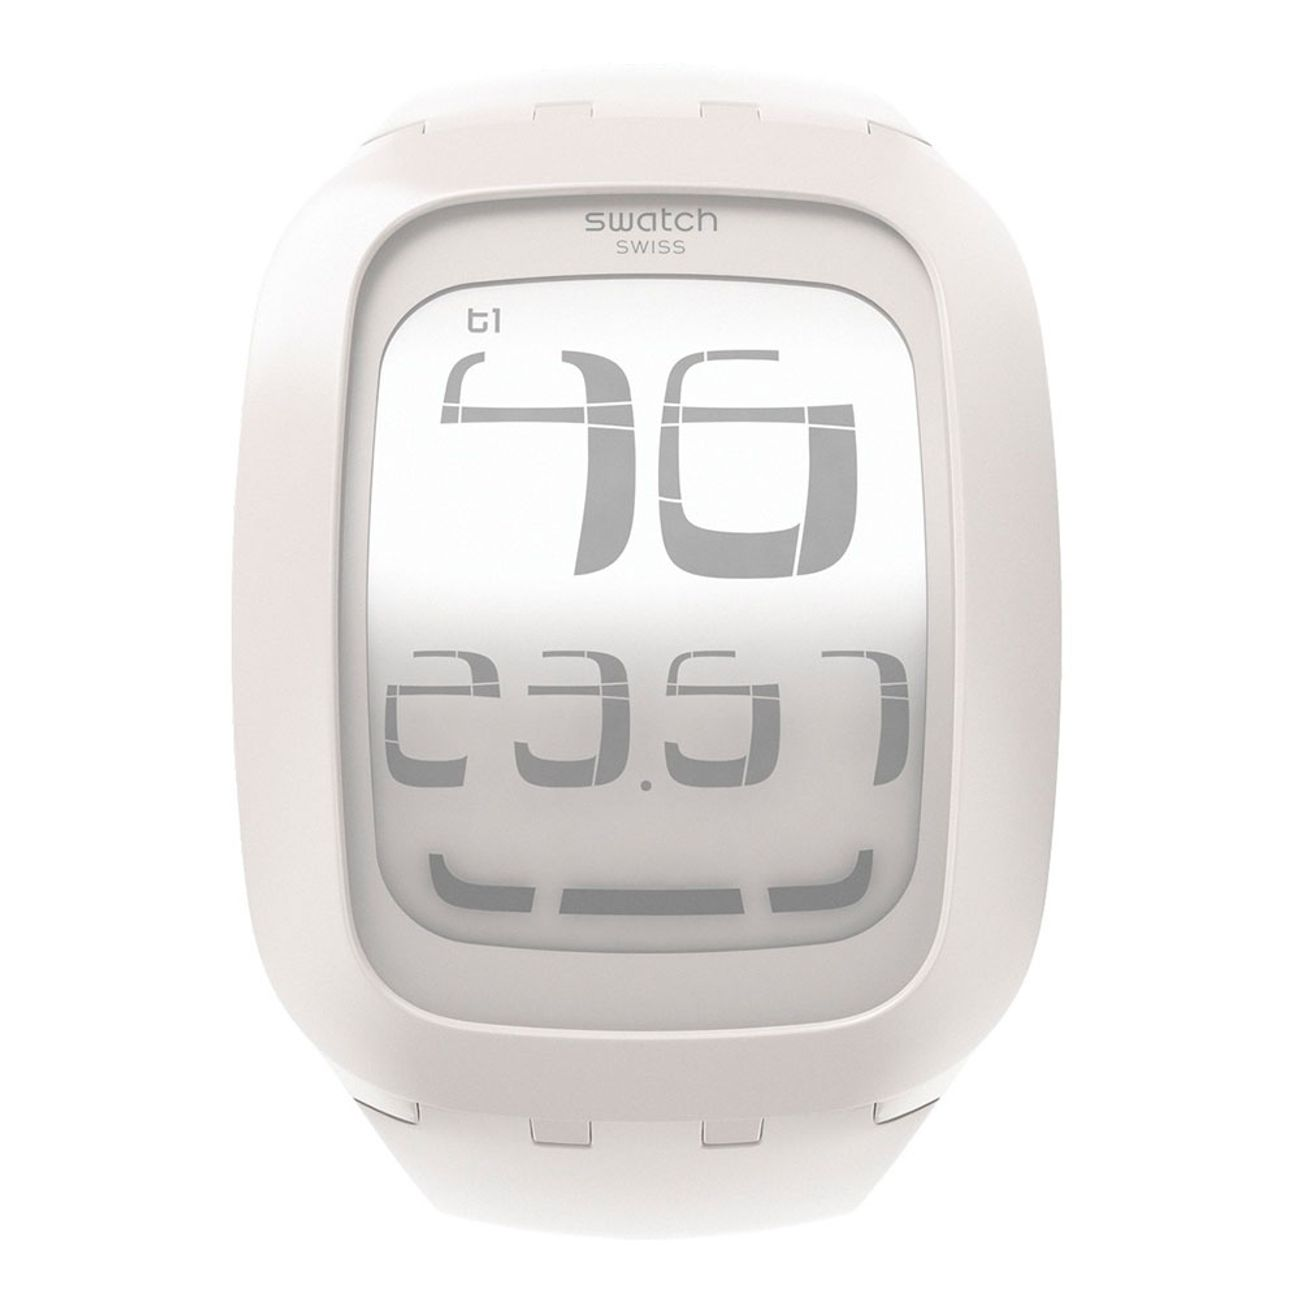 Touch White Touch Swatch Watch White Style Swatch dQrtsh